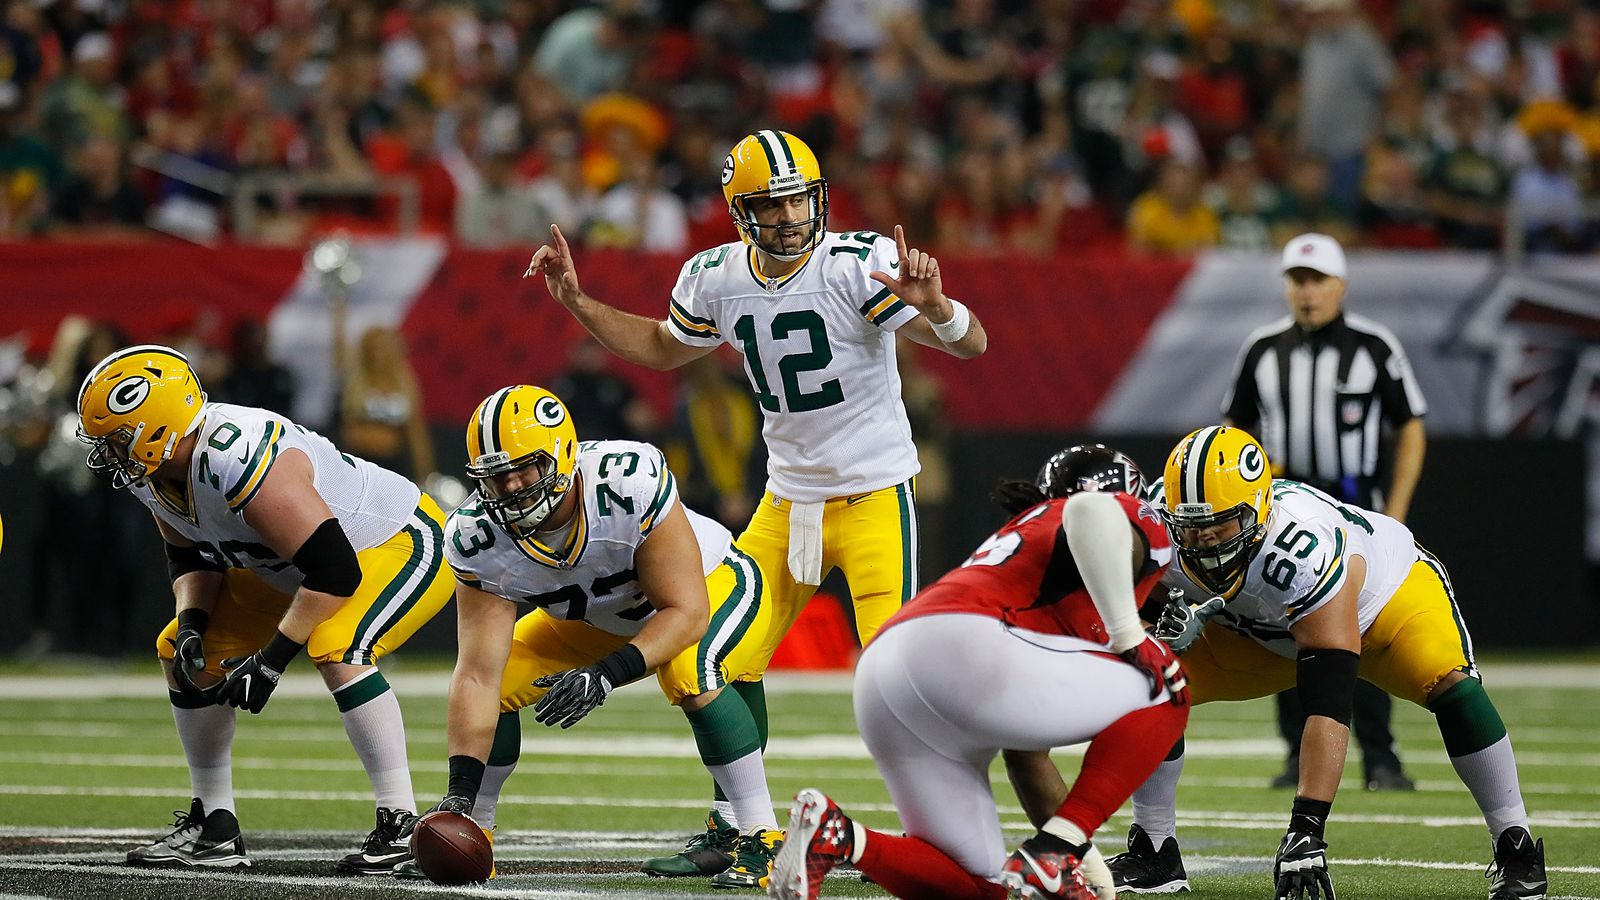 packers vs chargers predictions daily fantasy college football picks